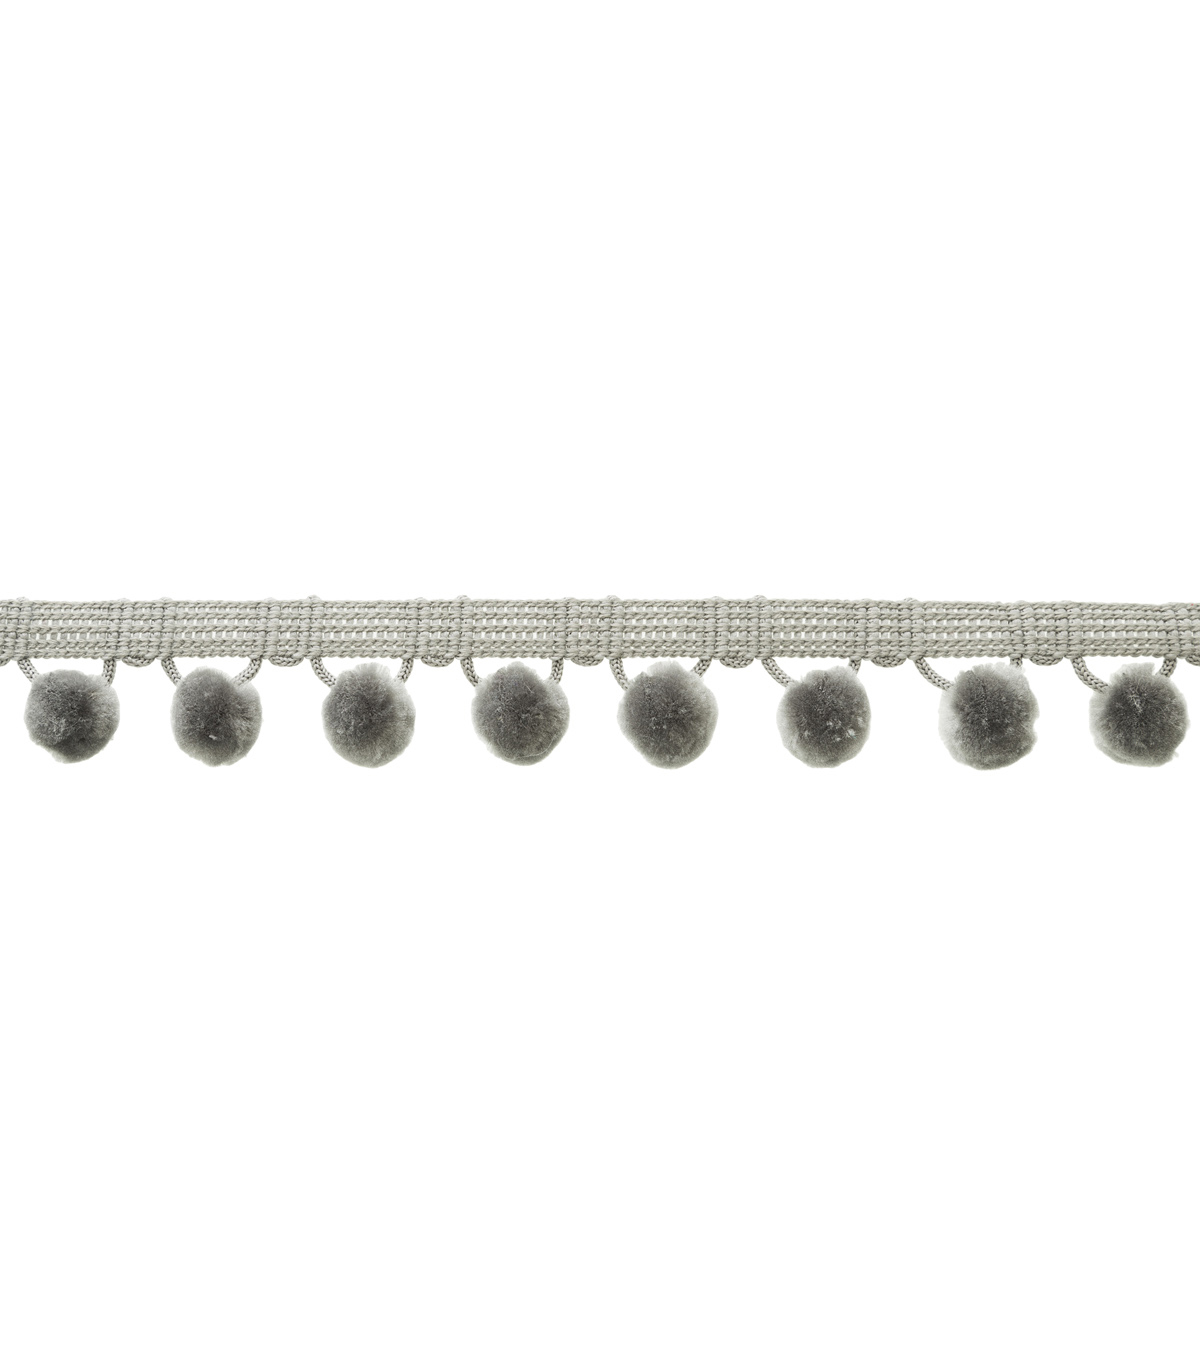 Wrights Ball Fringe Trim-Gray